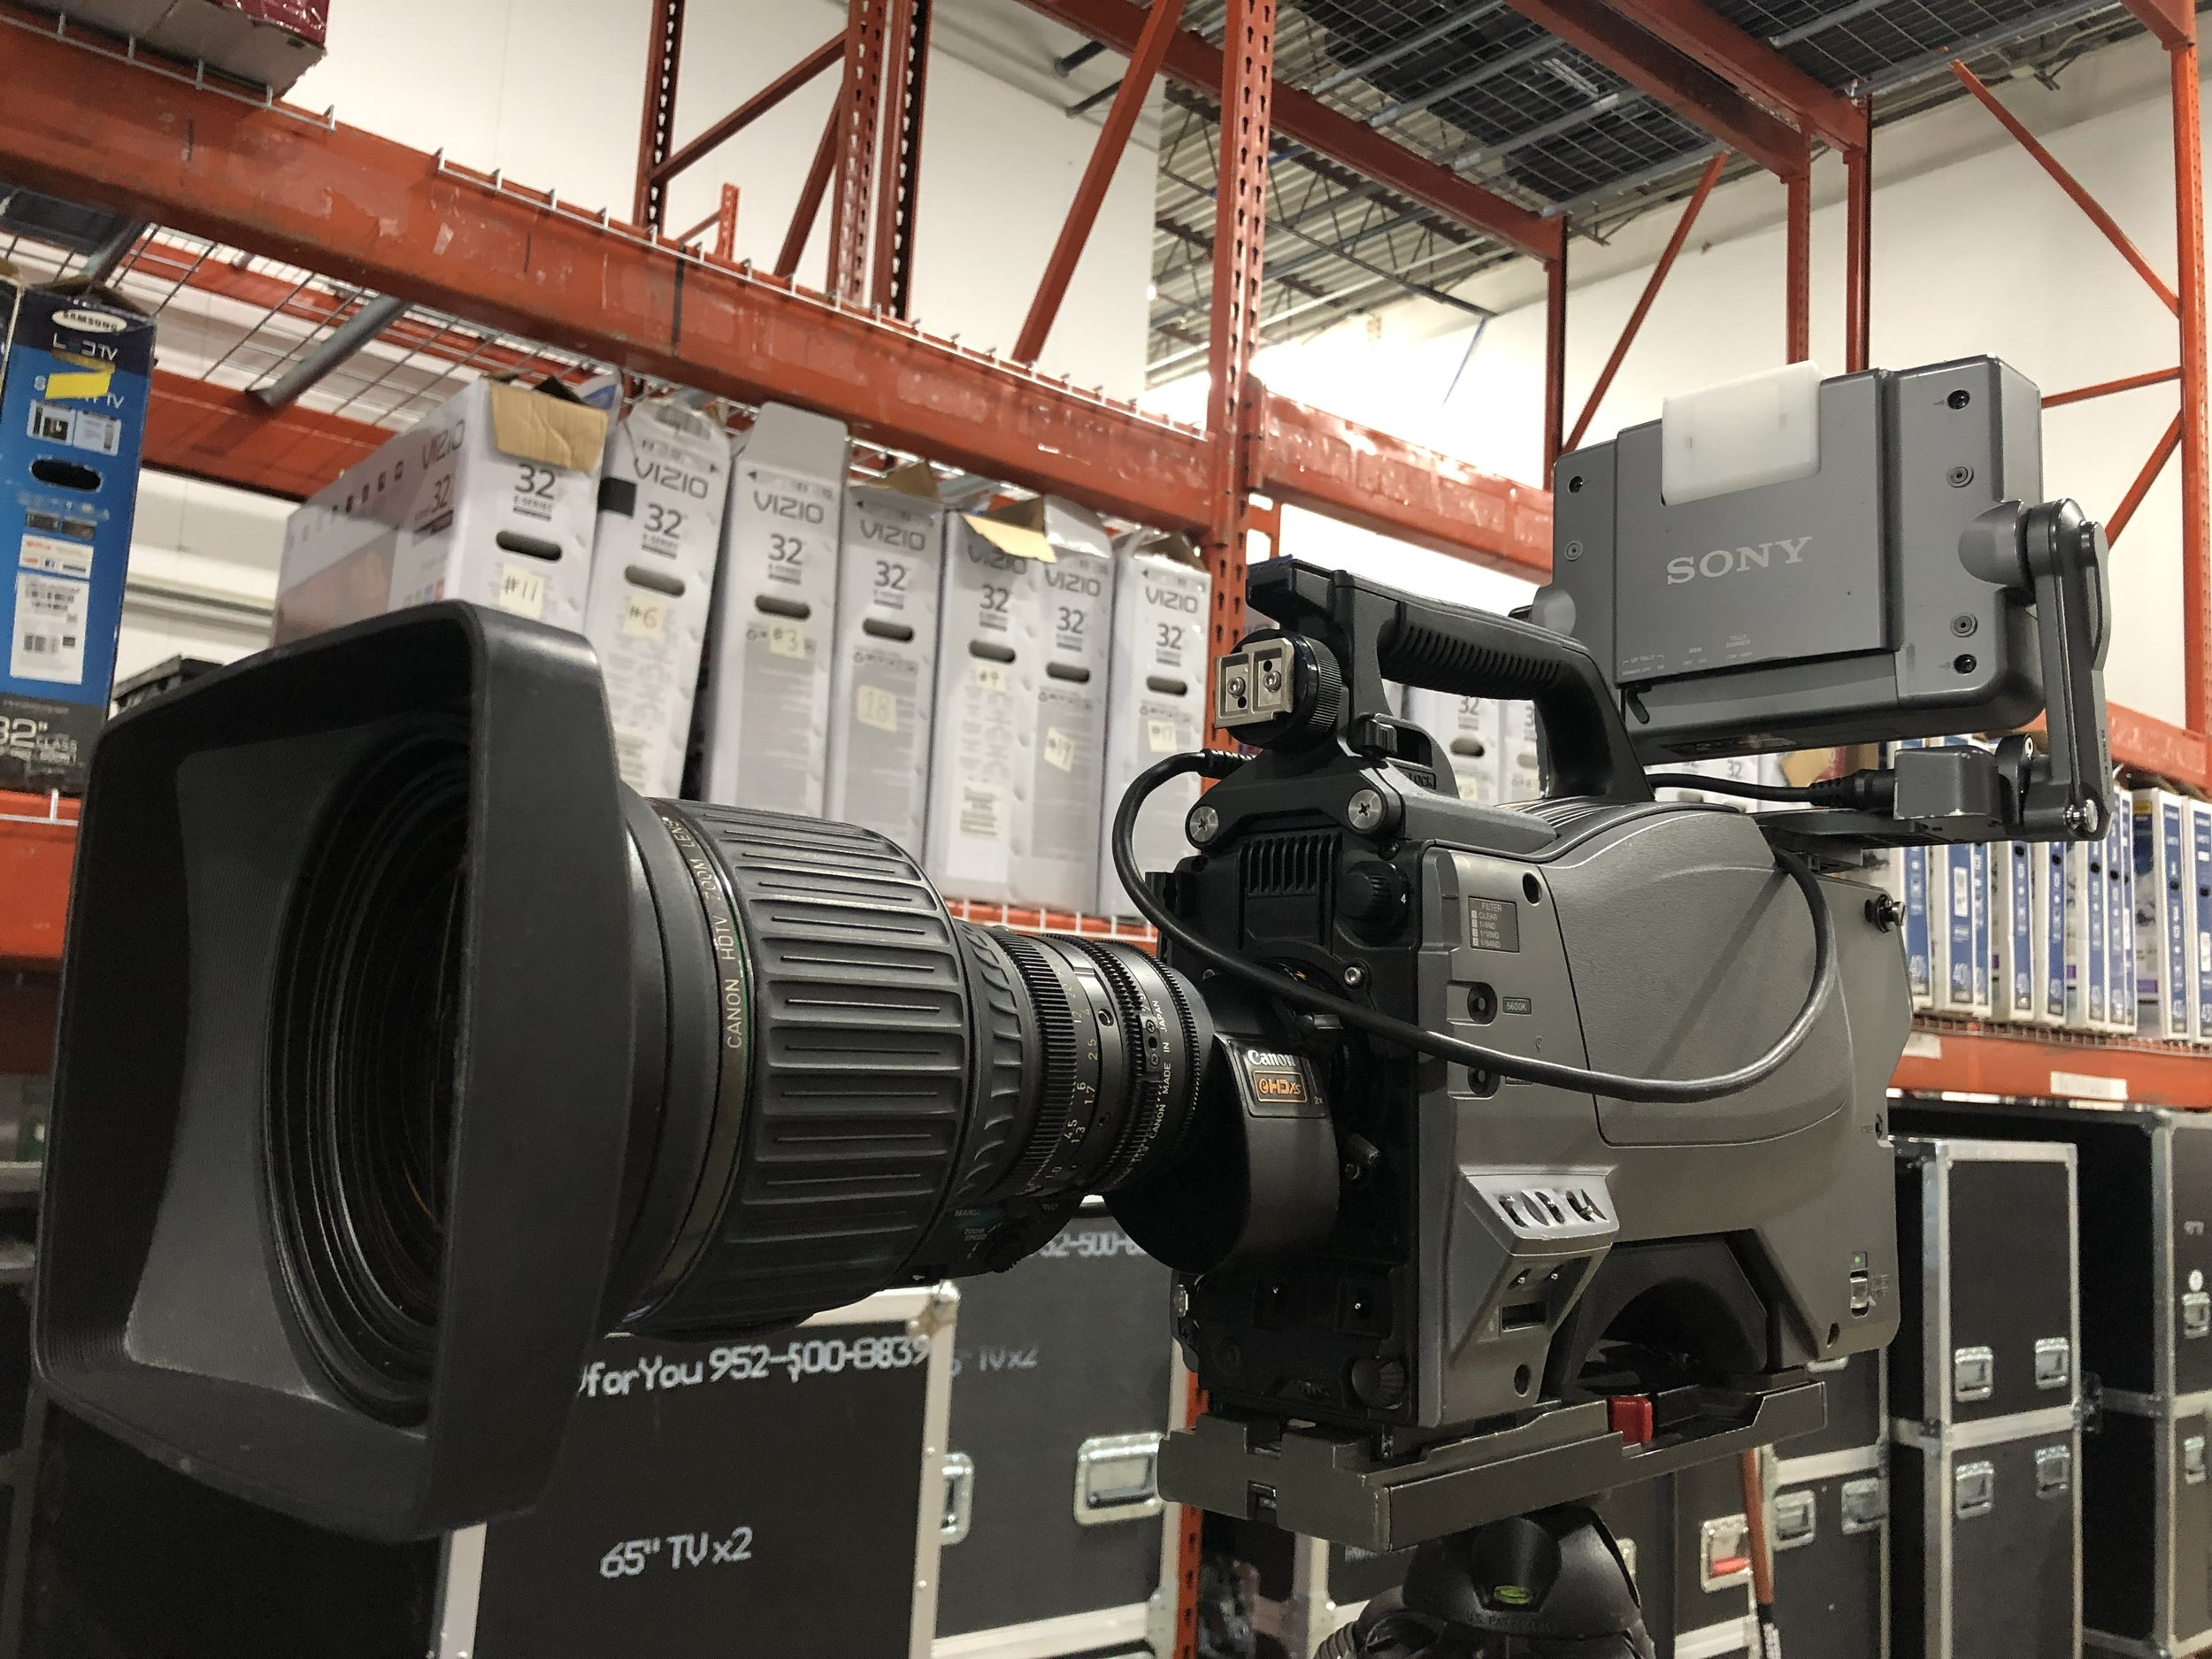 Picture of AV for You Sony HXC-100 Camera and Lens Rental Equipment